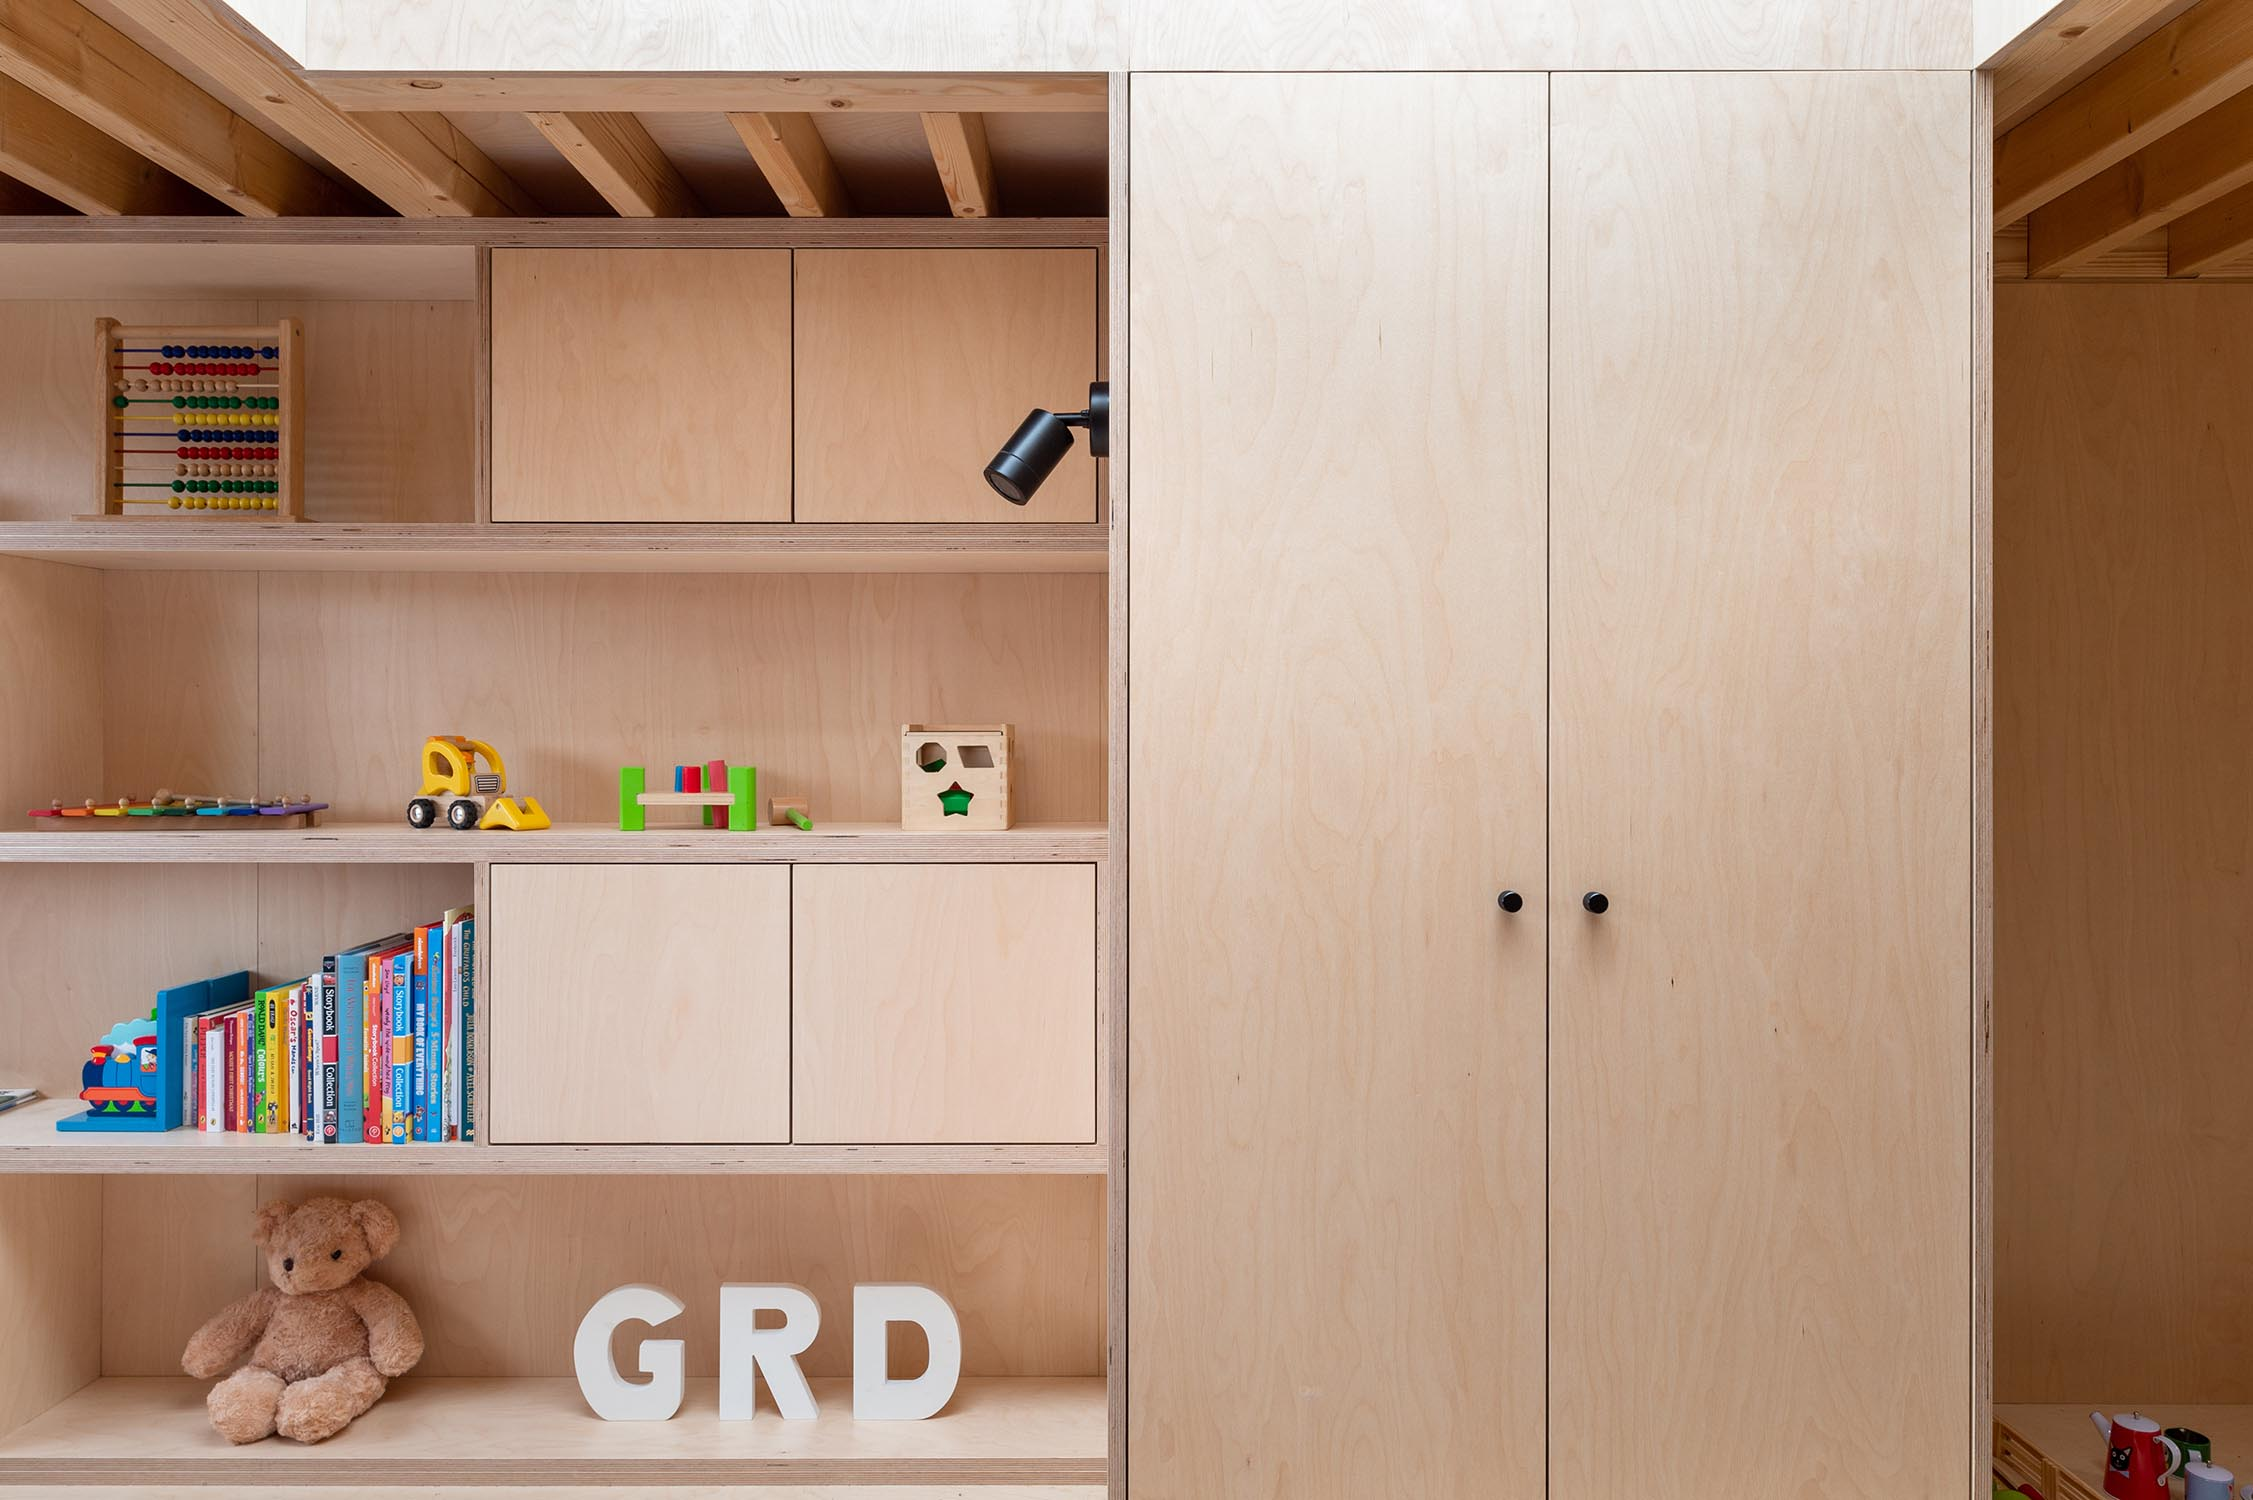 Plywood walls and cabinets along with shelves recreate the interior of this family home in London